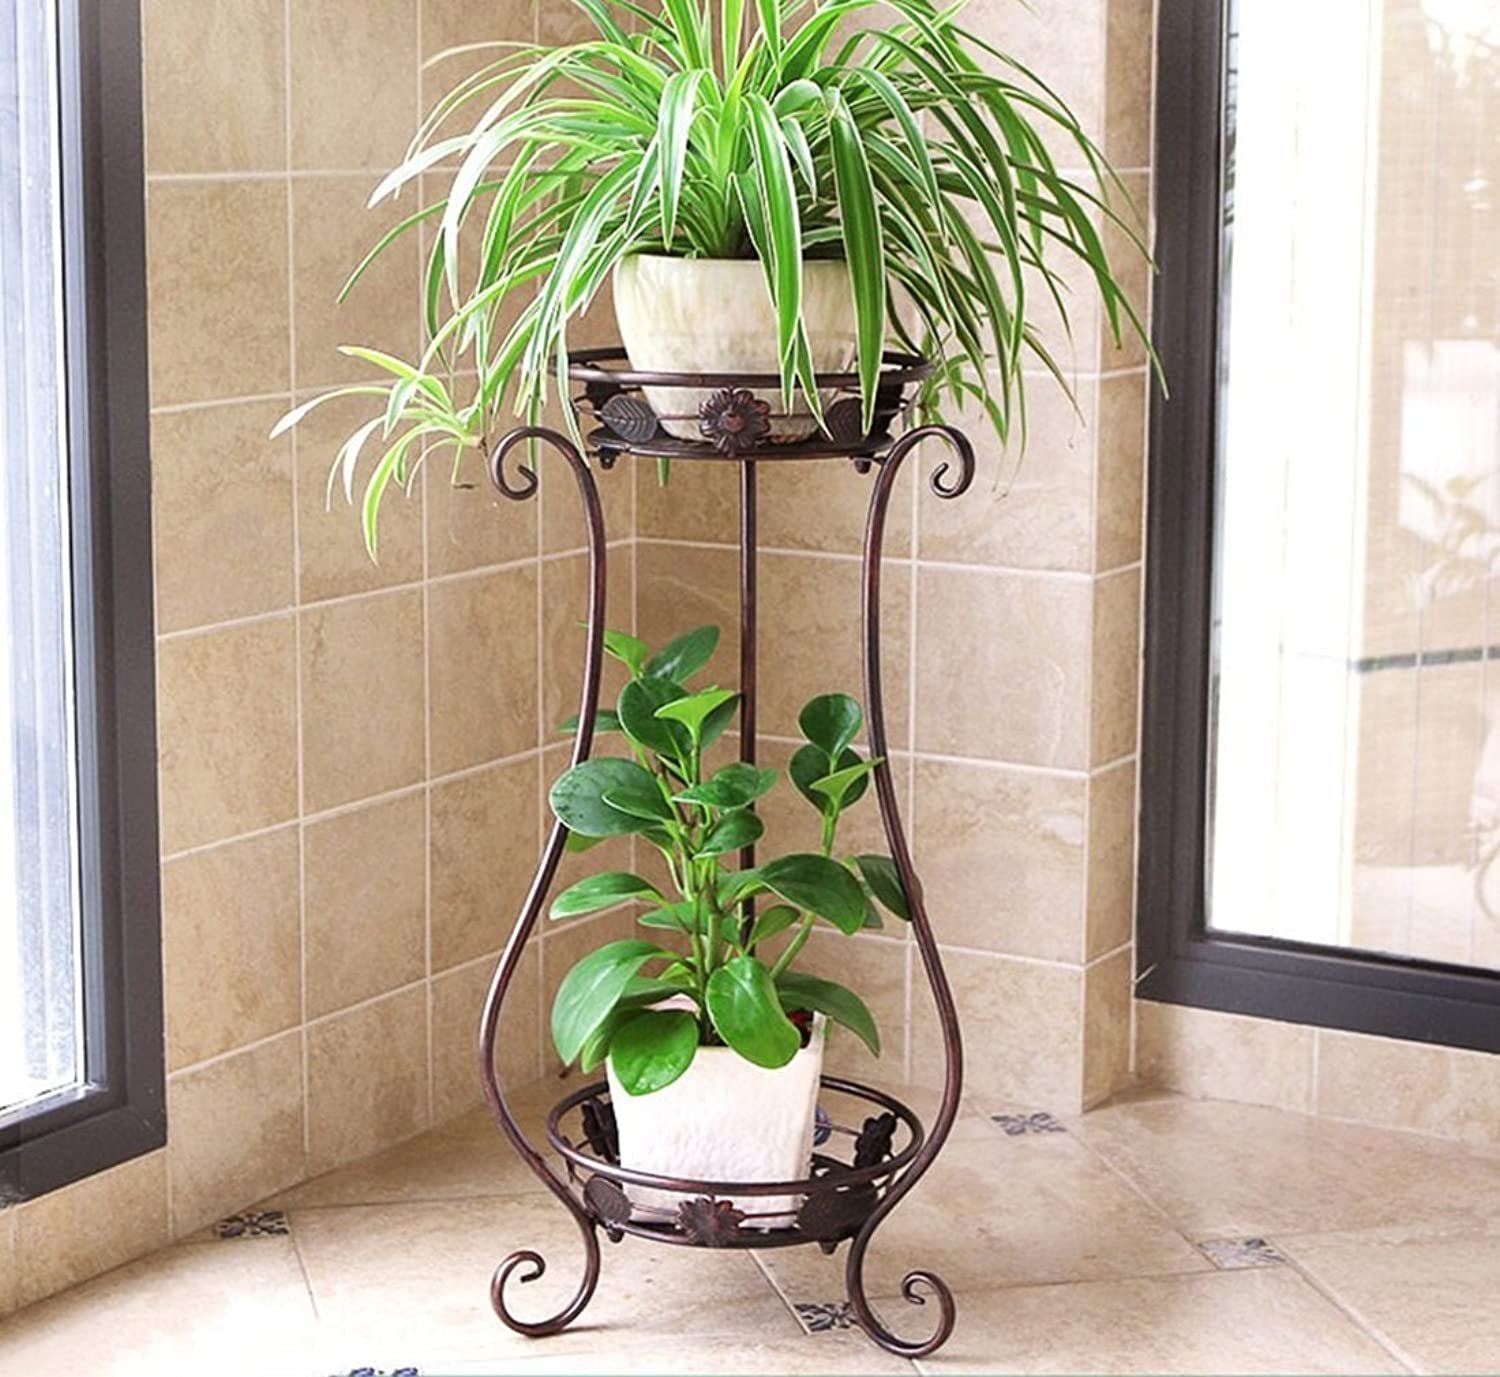 MBD Pot Rack Flower Stand Wrought Iron Flower Rack Multilayer Balcony Living Room Indoor Ground Plant Stand Small Decorative Flower Pots Shelf (color   A, Size   Small)